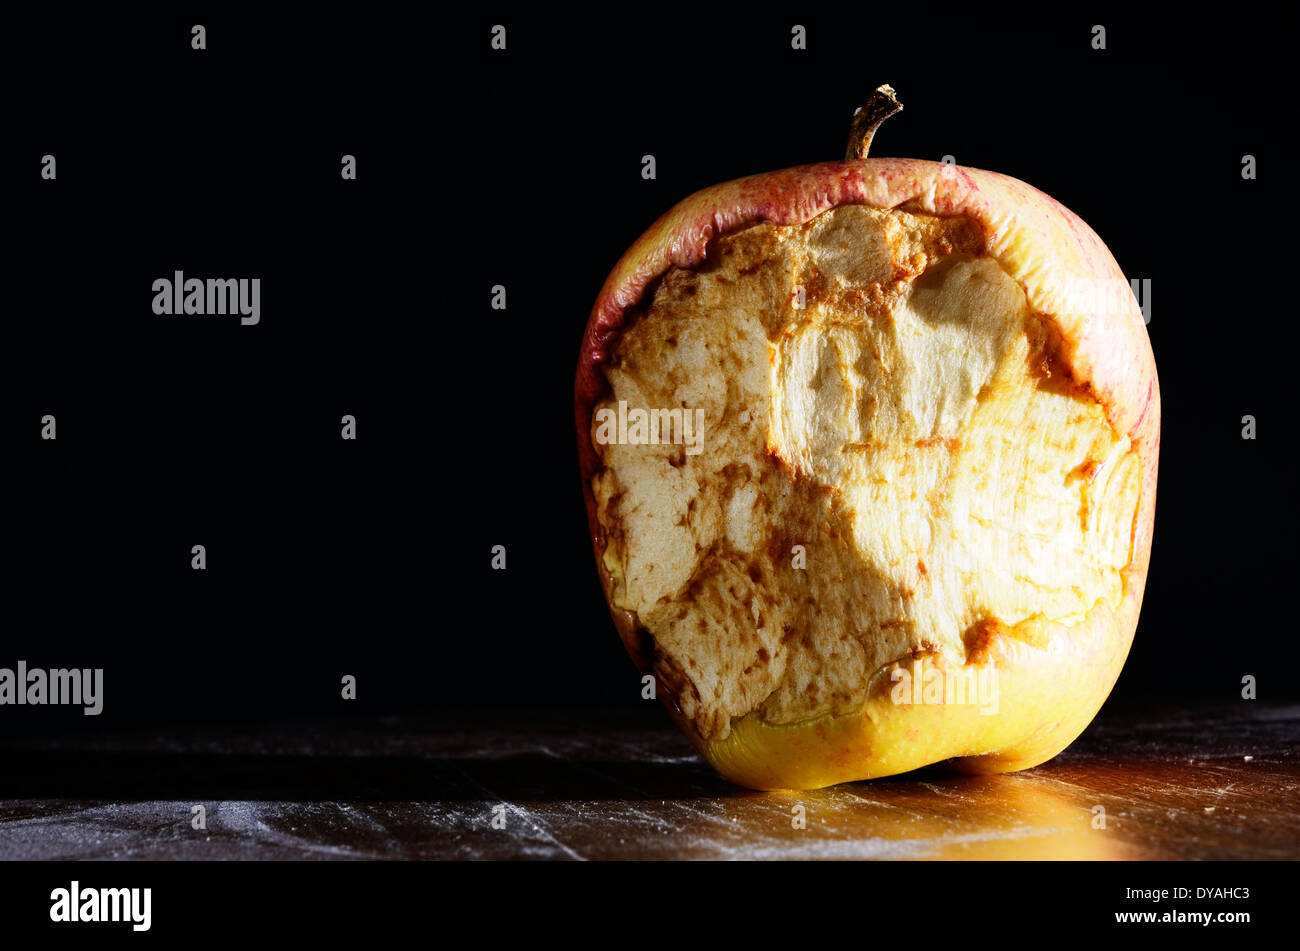 bitten apple on a dark background with room for text - Stock Image